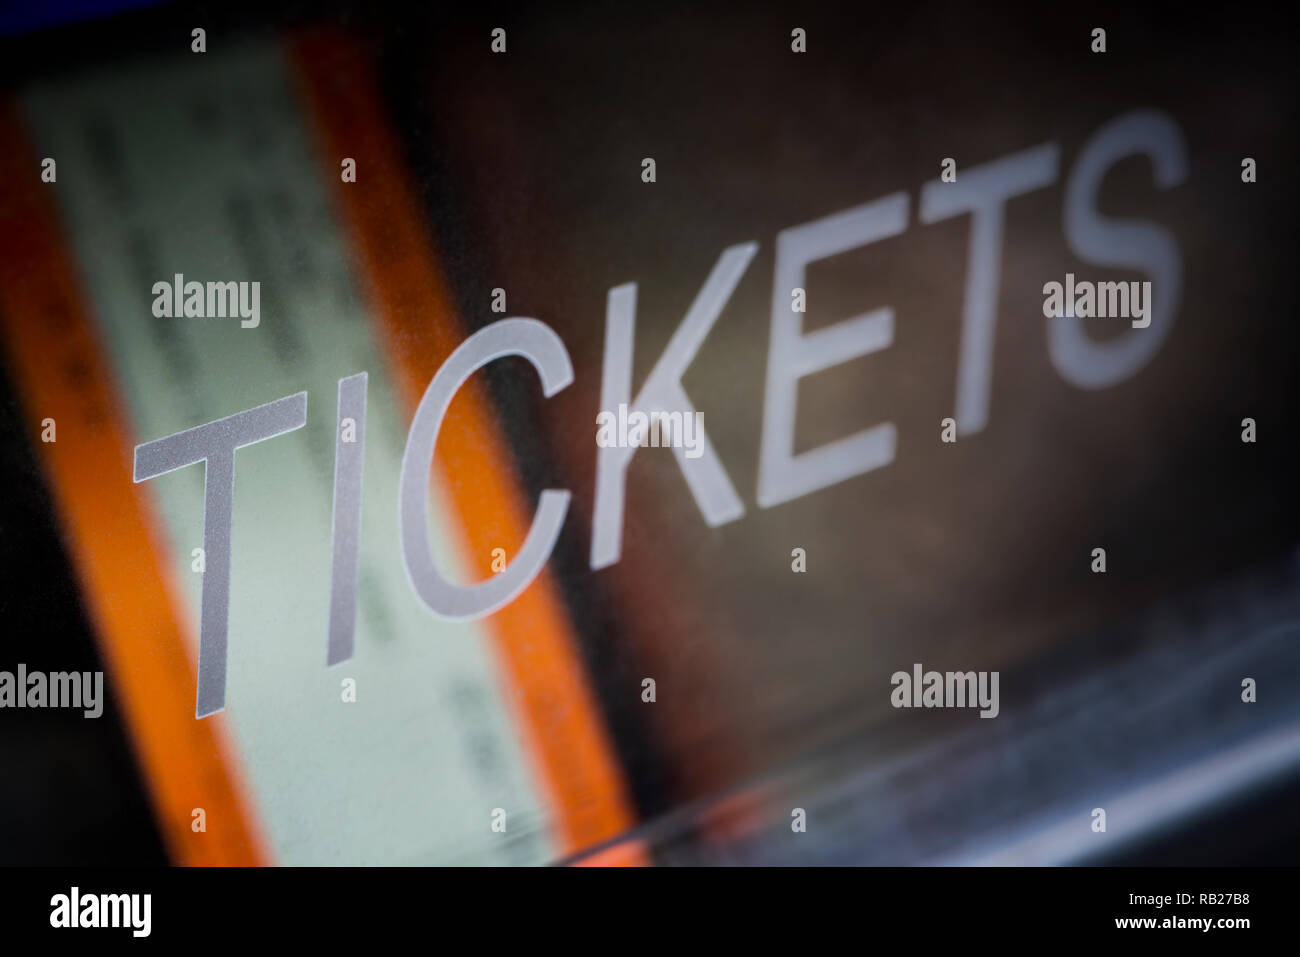 A train ticket awaits collection inside a ticket vending machine located at a UK train station. - Stock Image